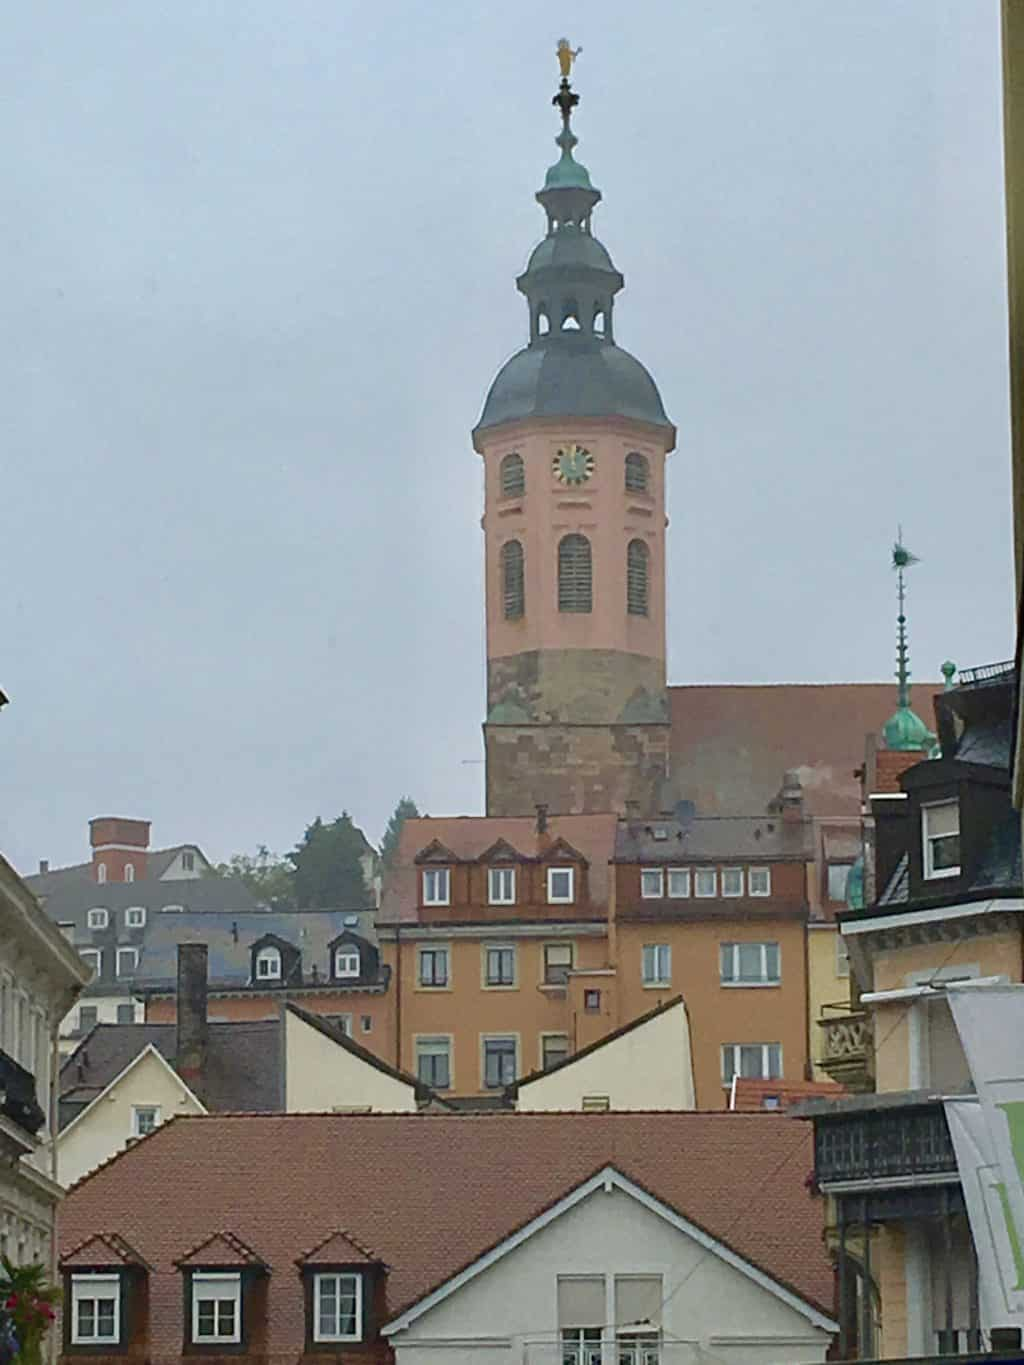 City view in Baden Baden with Collegiate Church